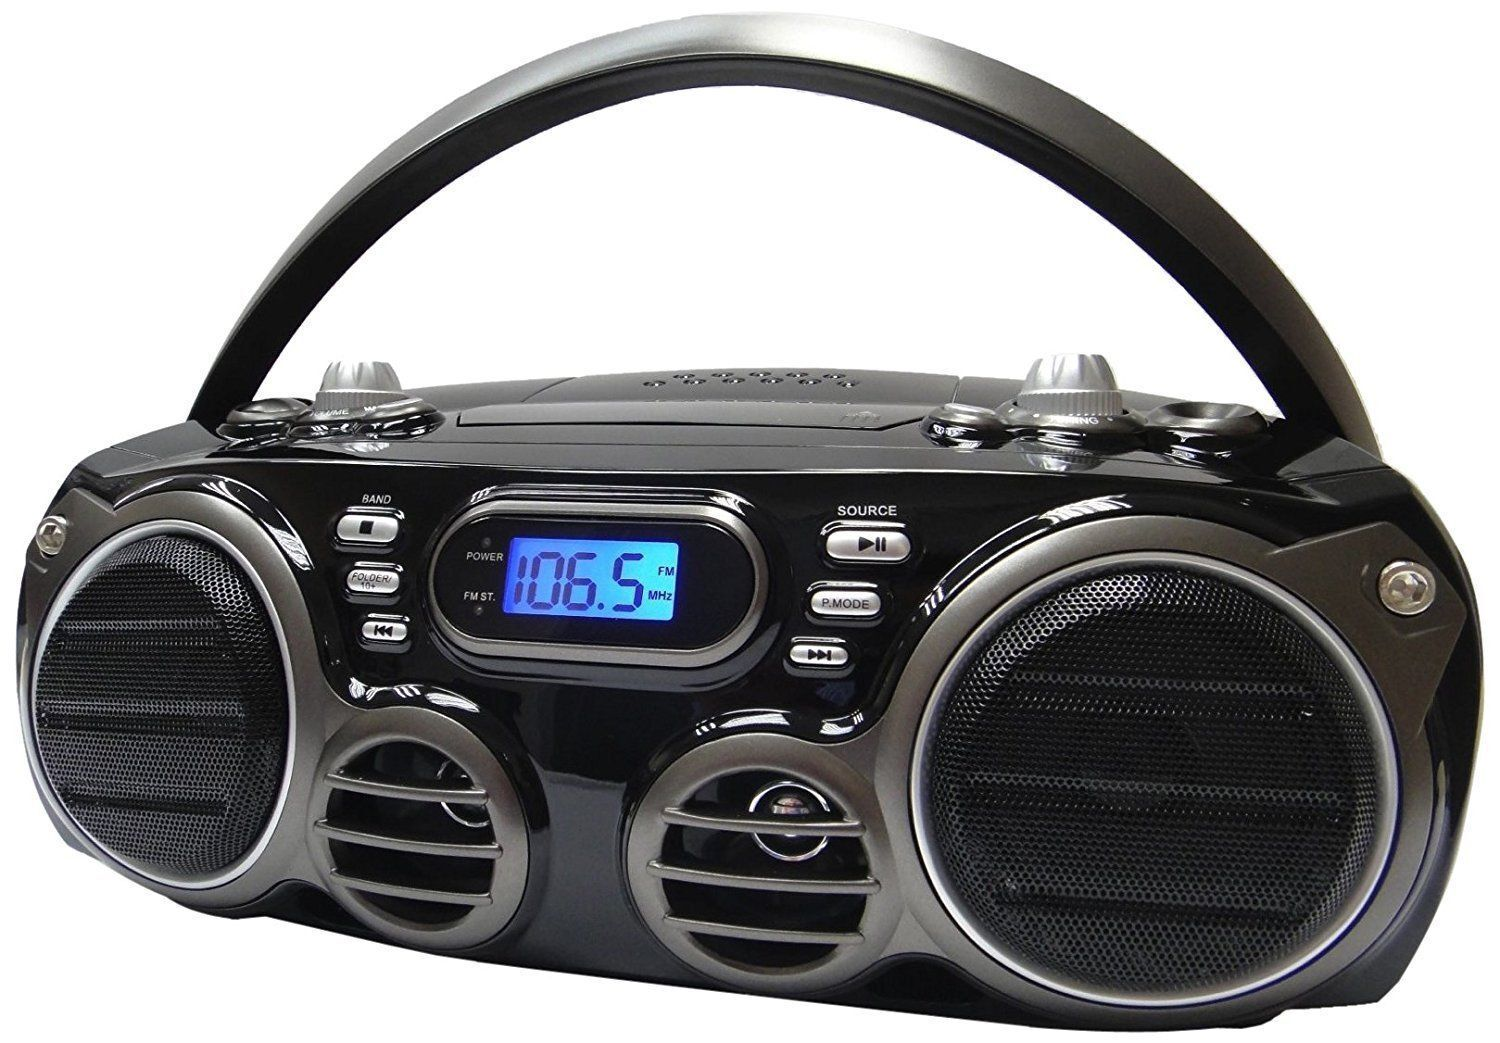 new bluetooth portable stereo boombox cd player